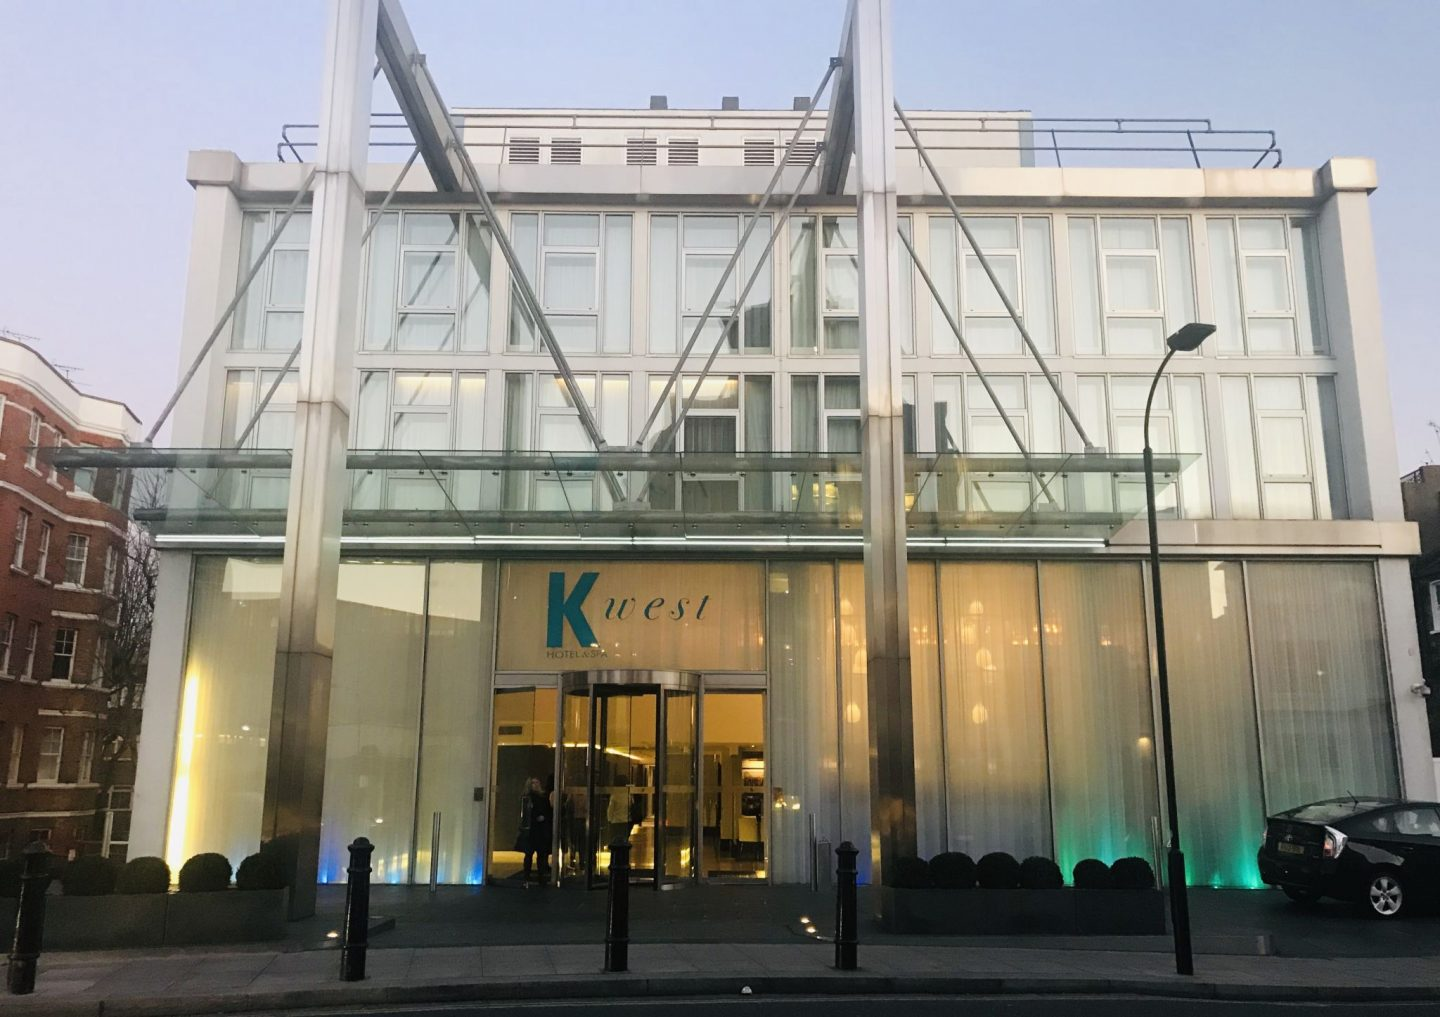 Staying at K West Hotel